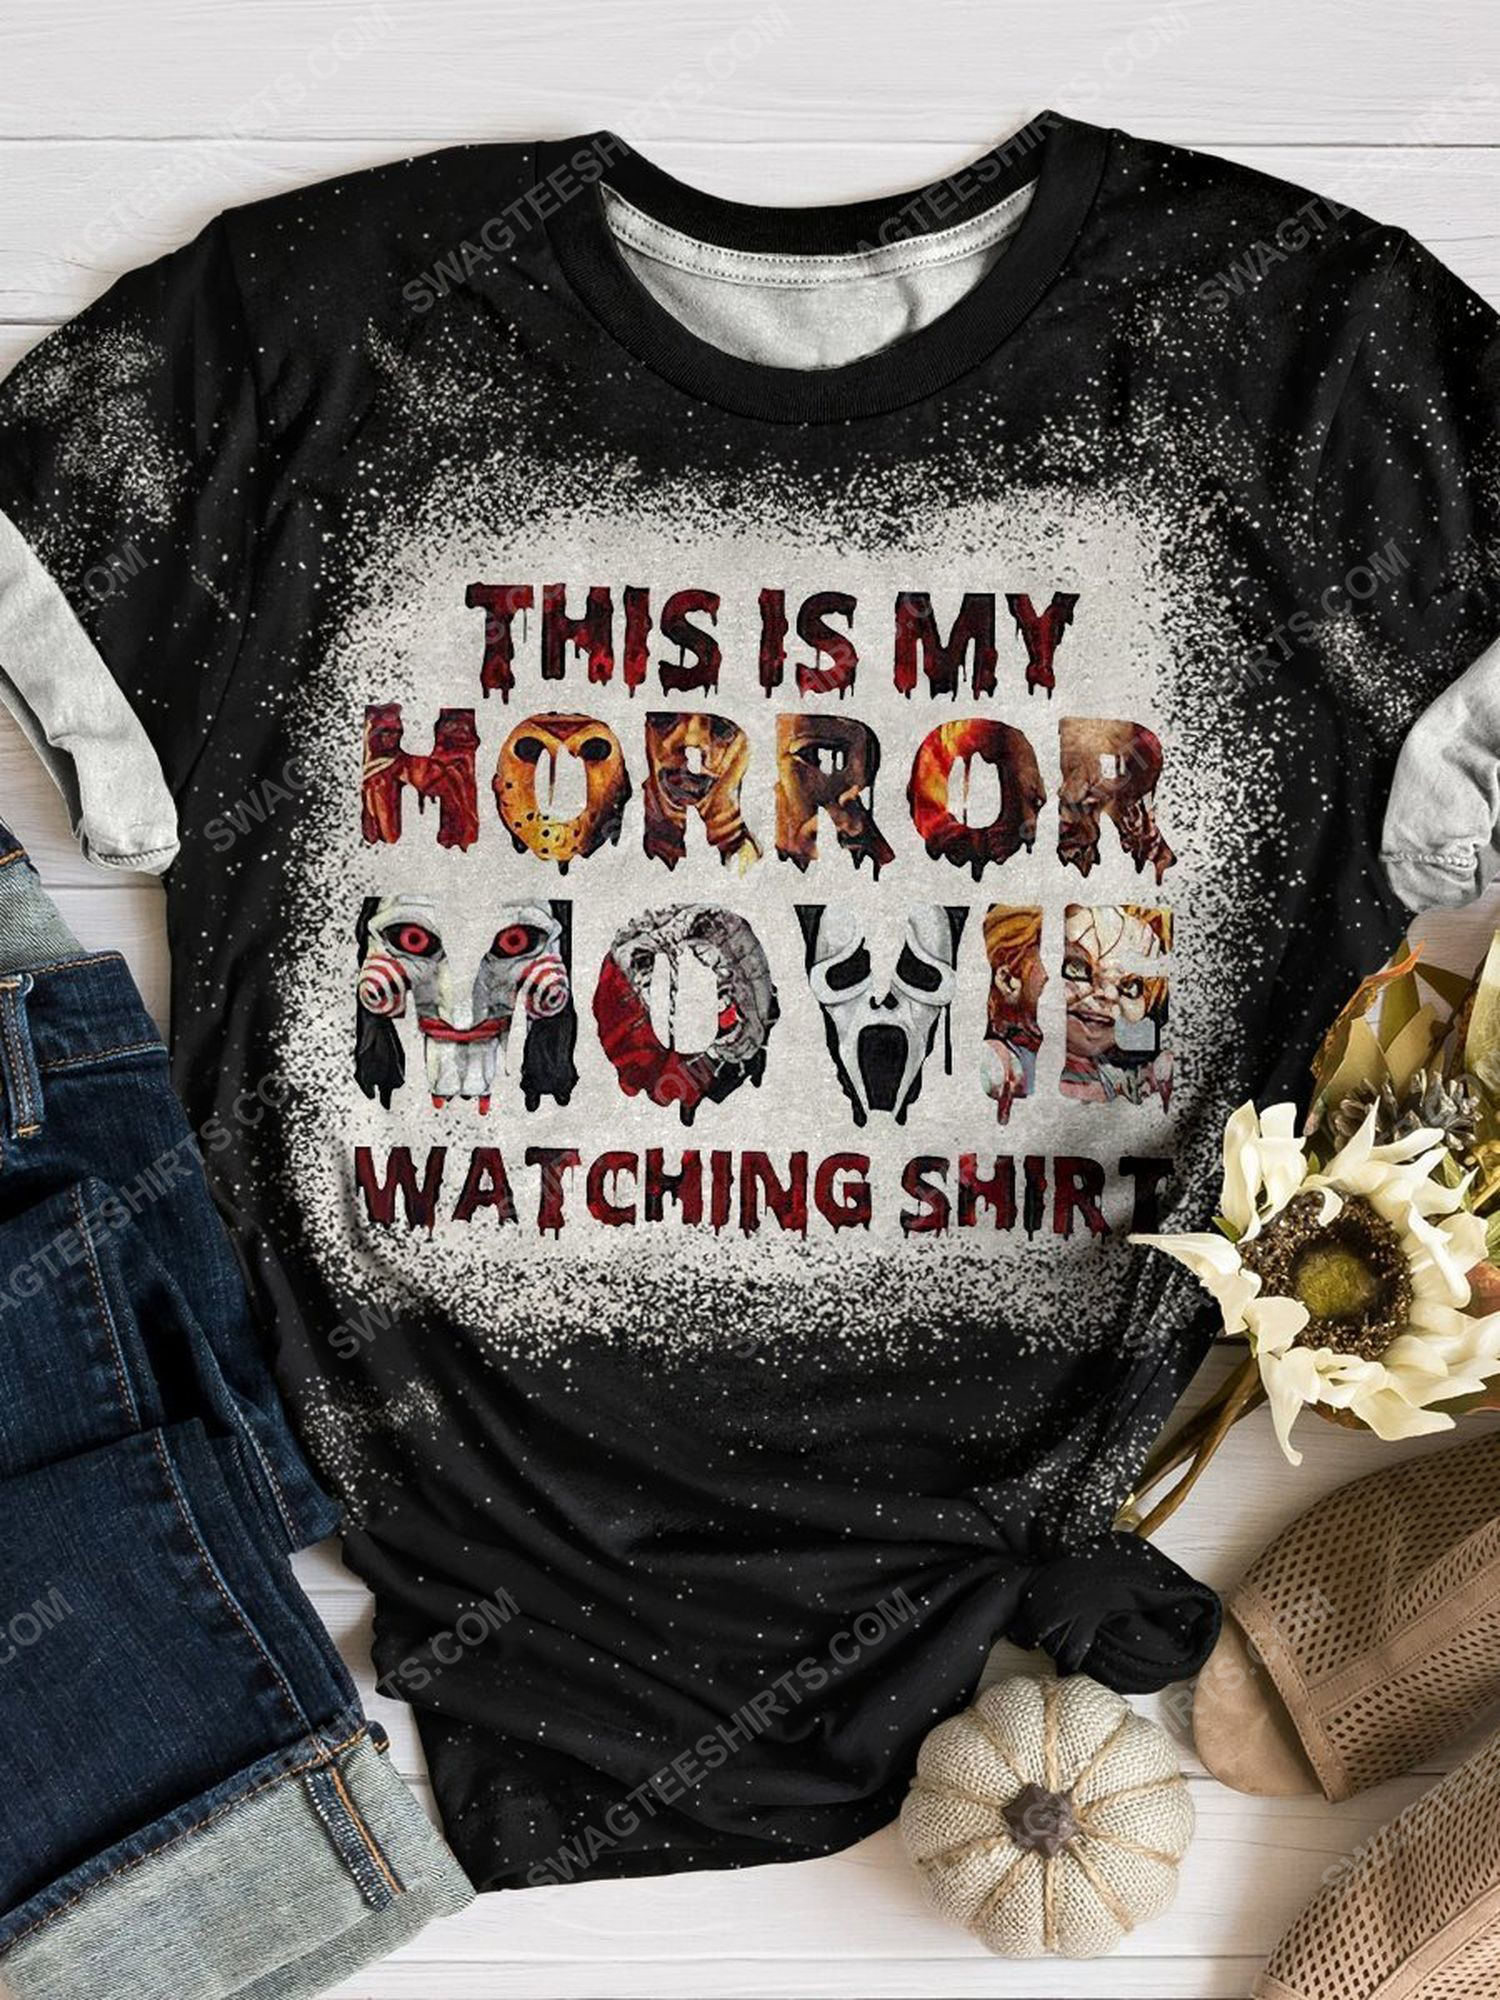 This is my horror movie watching shirt bleached shirt 1 - Copy (2)